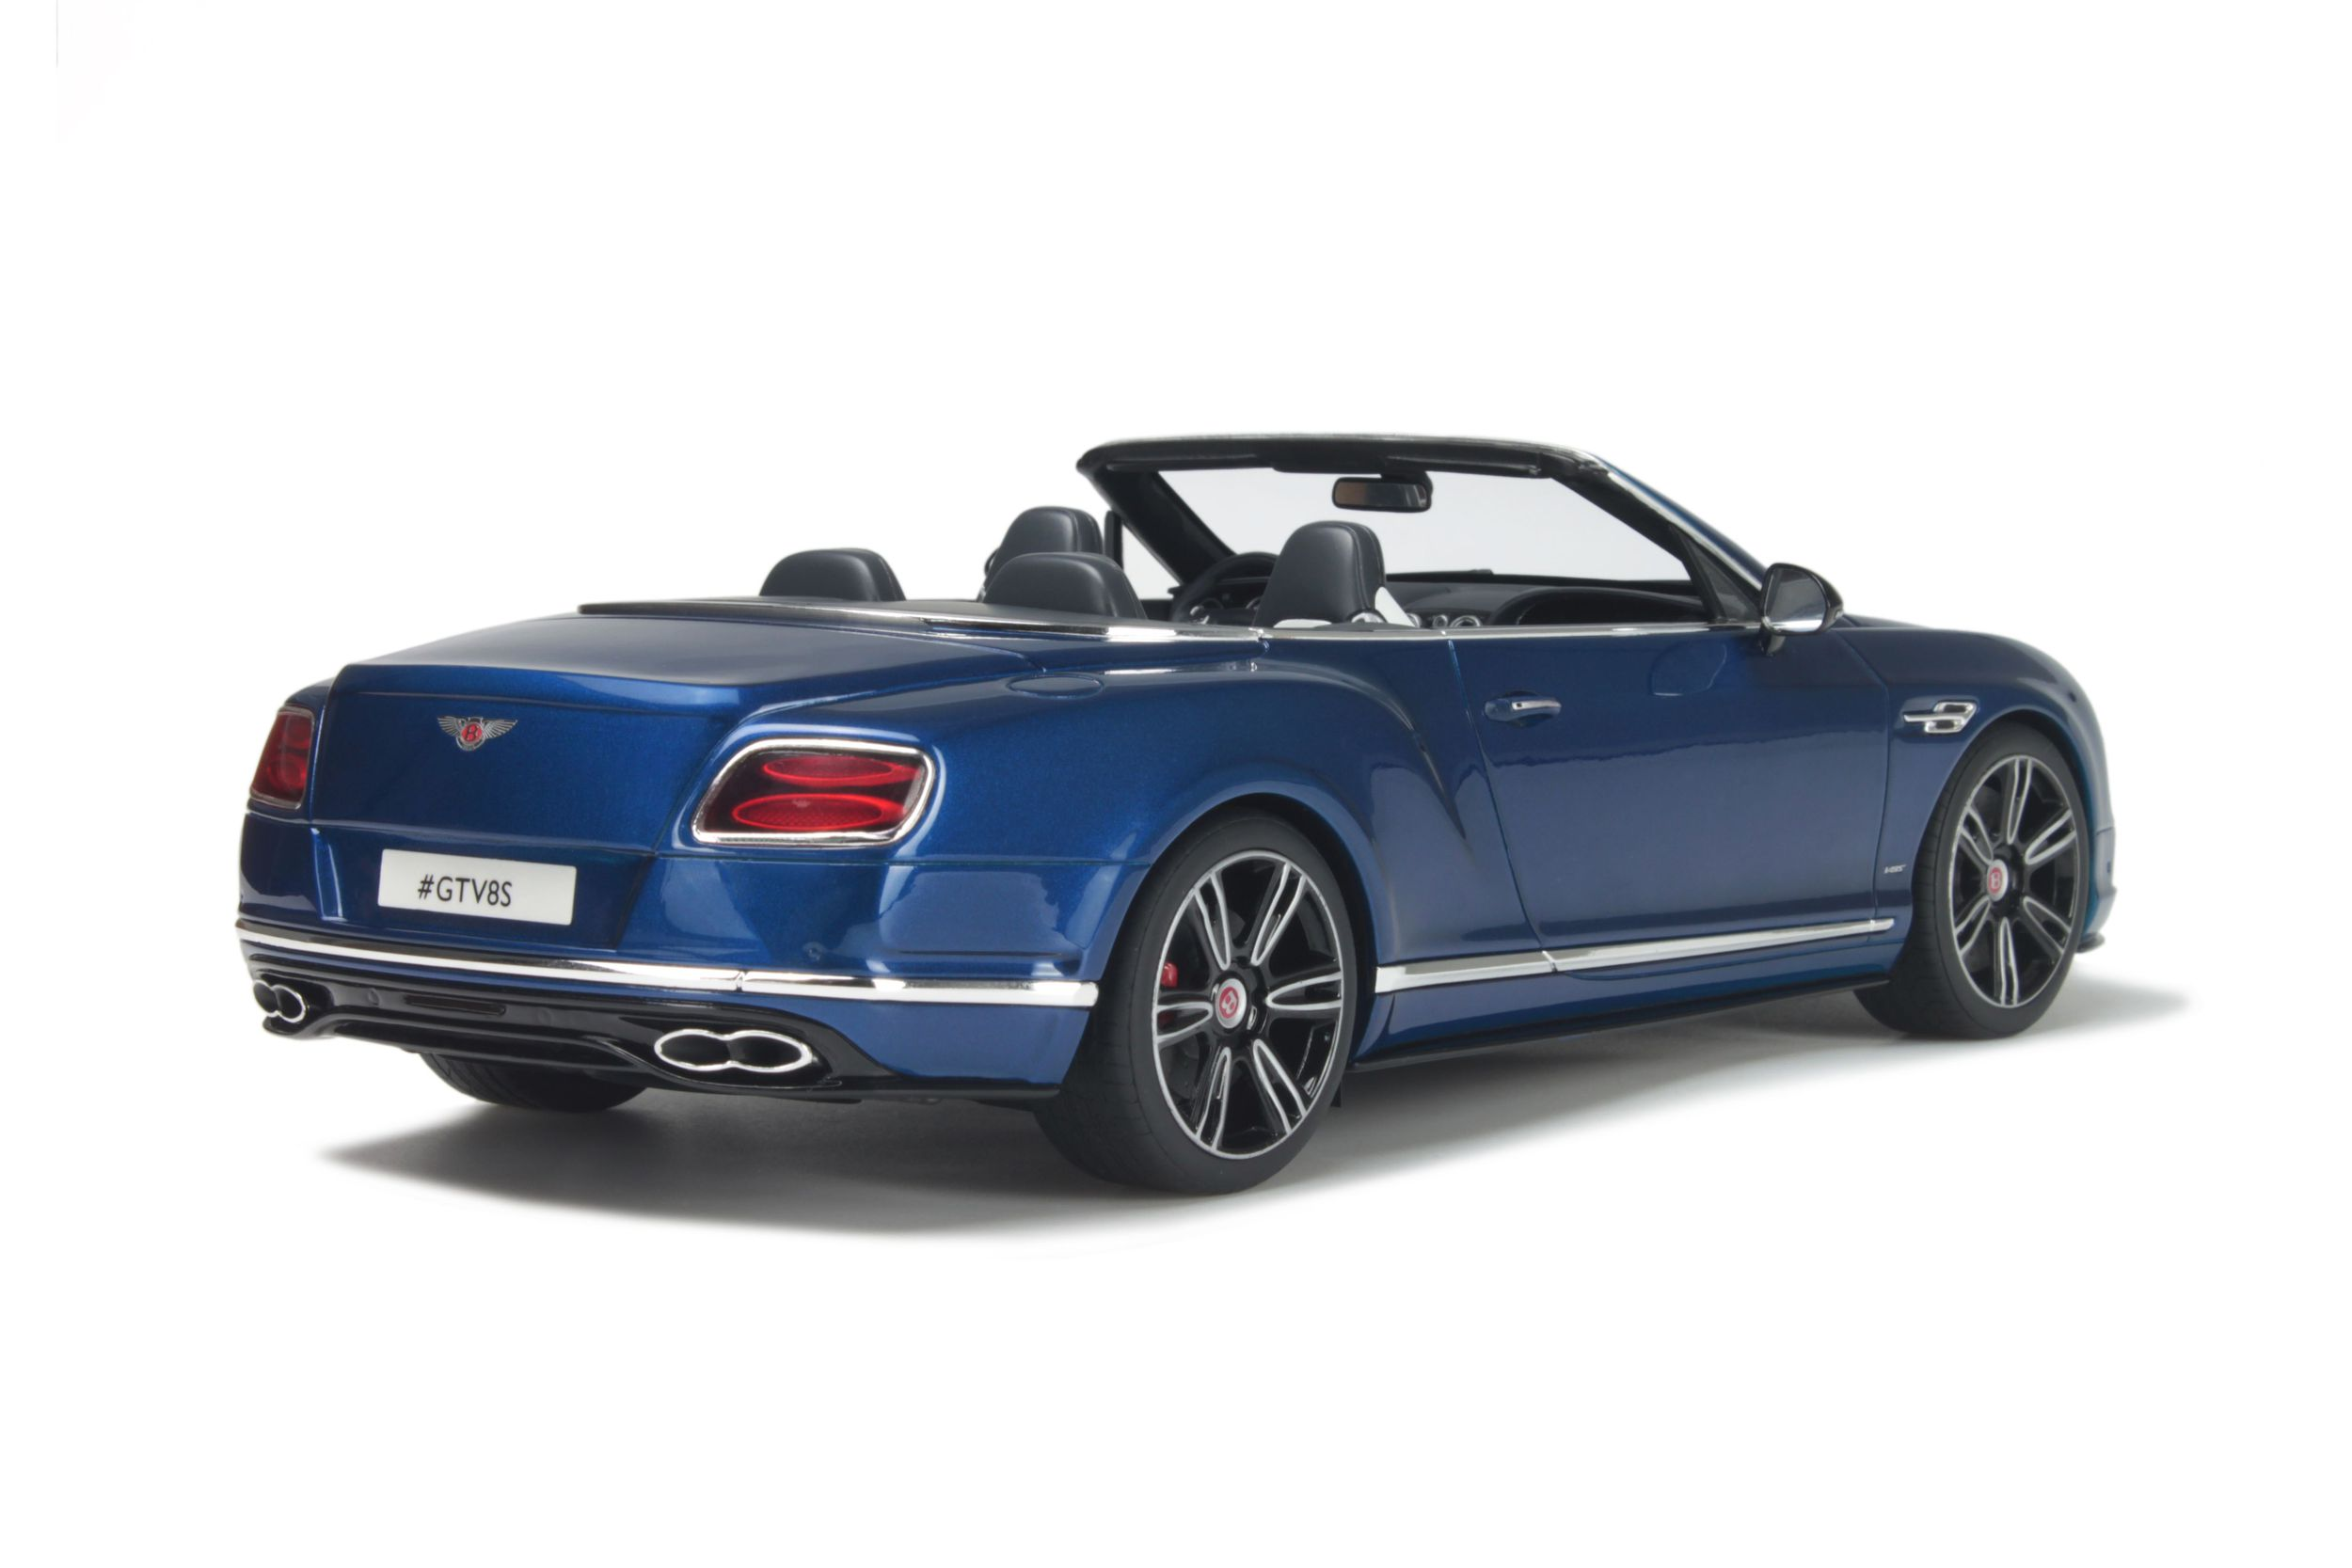 Bentley Continental Gt V8 >> Bentley Continental GT V8 S Cabriolet - Voiture miniature